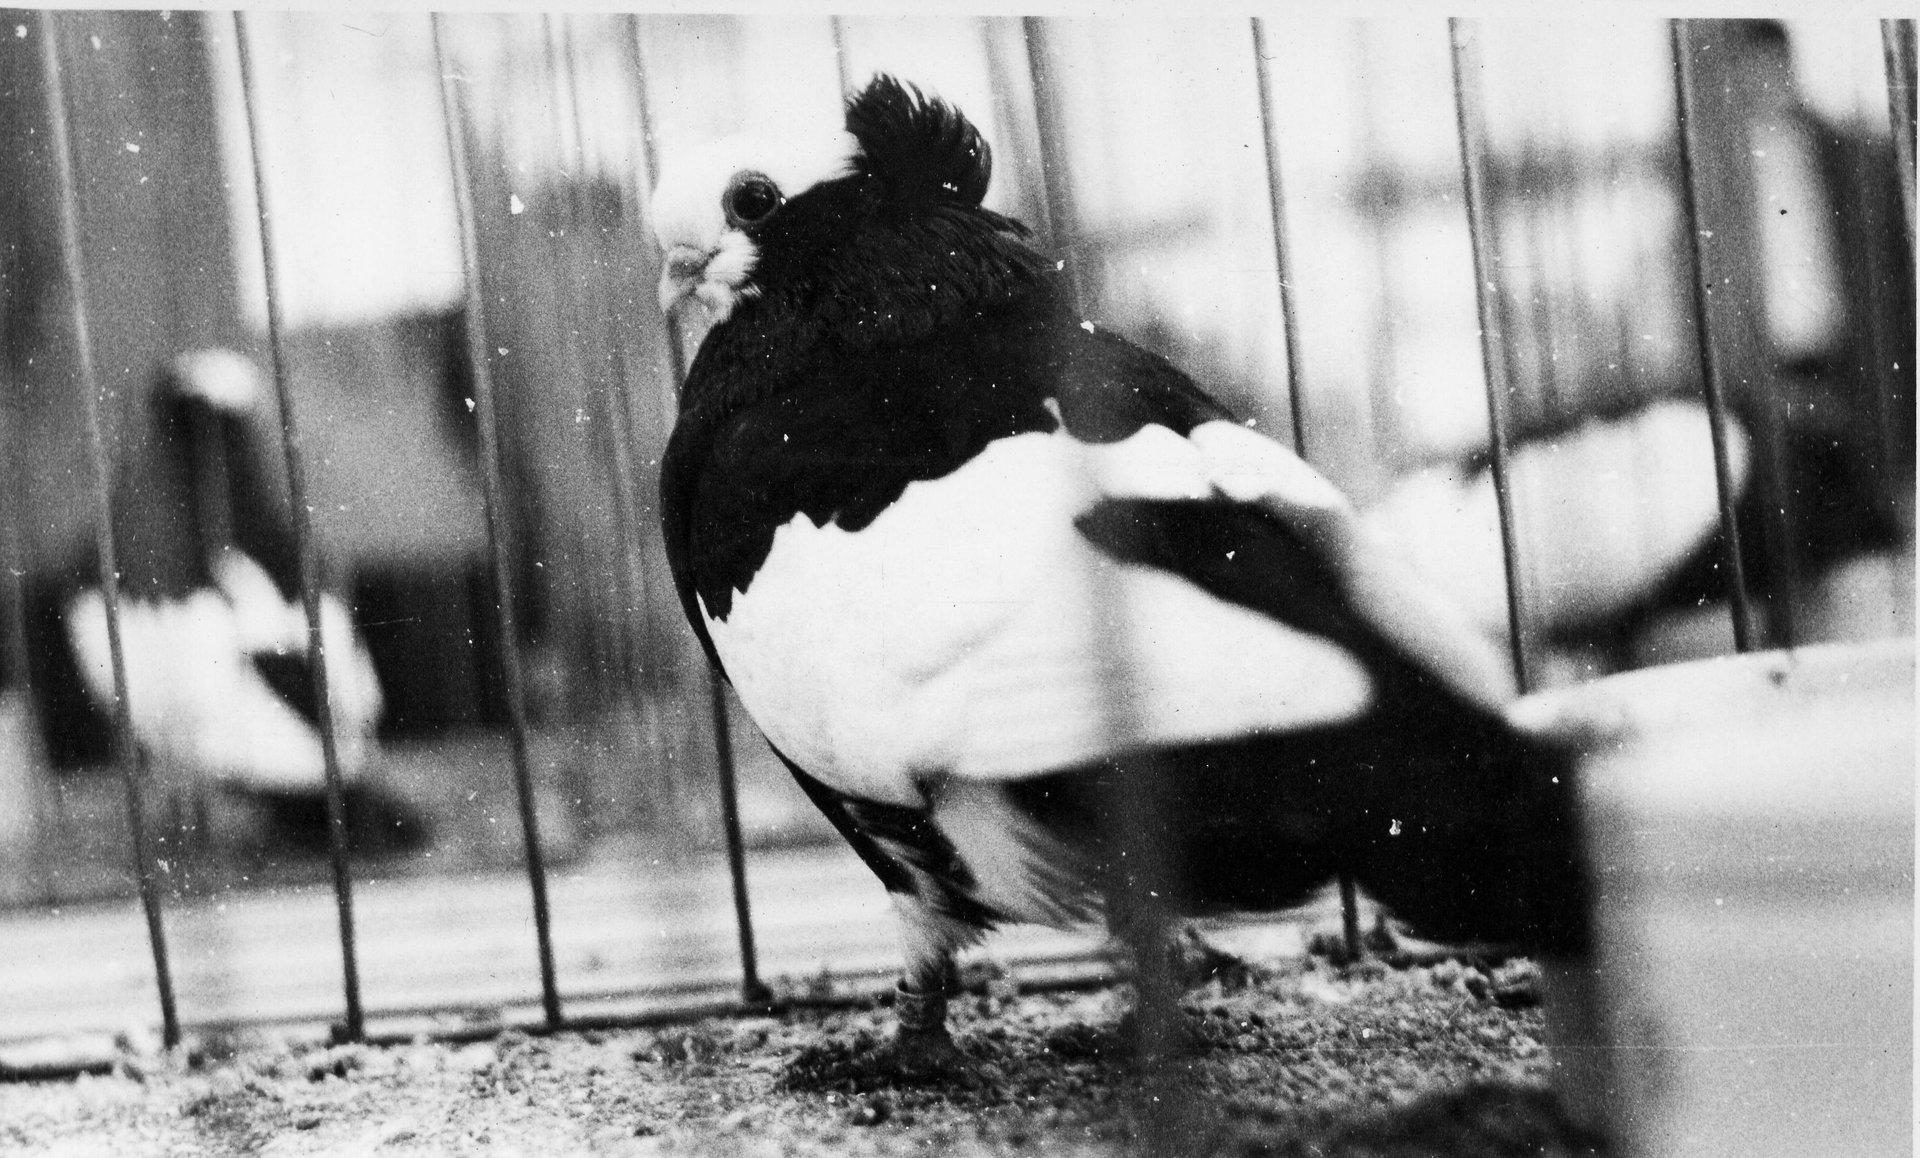 Petra Feriancová, Series Creator – From the Archive of O. Ferianc, New Breeds 1949-1952, 2008, (89/112)